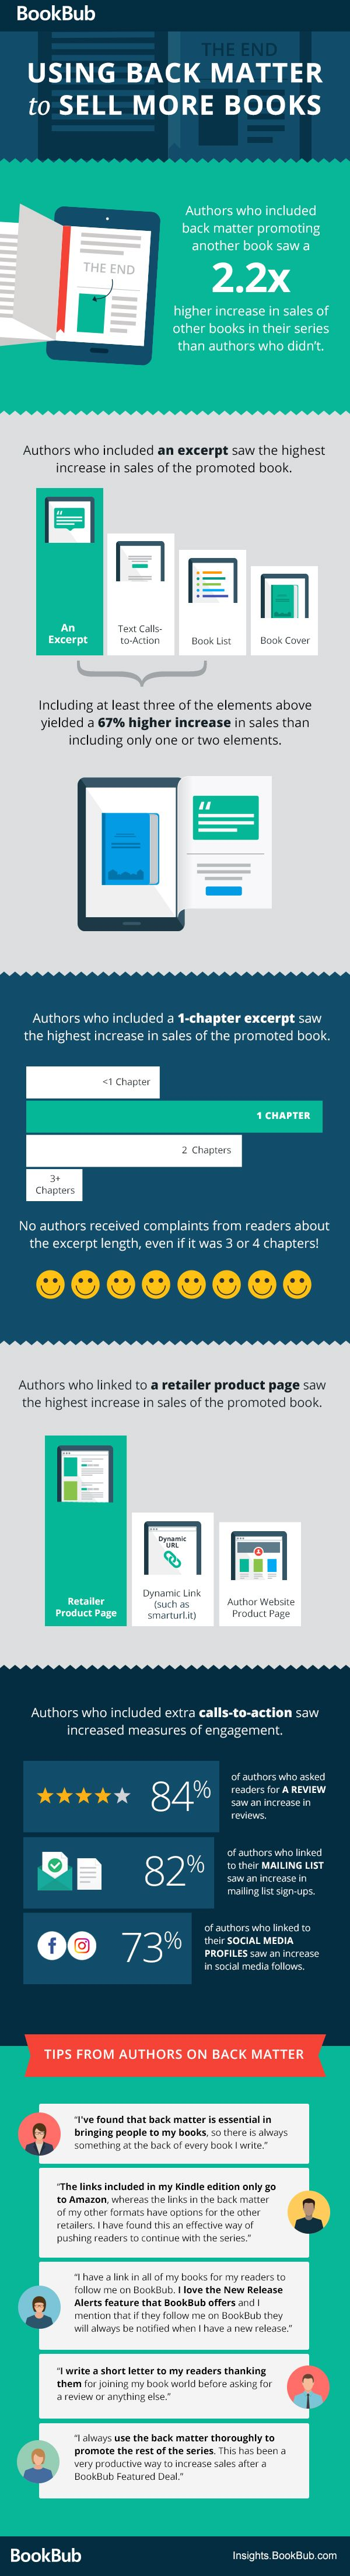 """An ebook's back matter — the pages that follow the end of the narrative — is prime real estate for promoting other books. We surveyed 250 authors to gather data on how back matter promotions helped increase sales of their other books, and what sort of back matter promotions worked best for them. We created the infographic below to share our findings, and hope this helps you brainstorm about how to format your own books' back matter."""